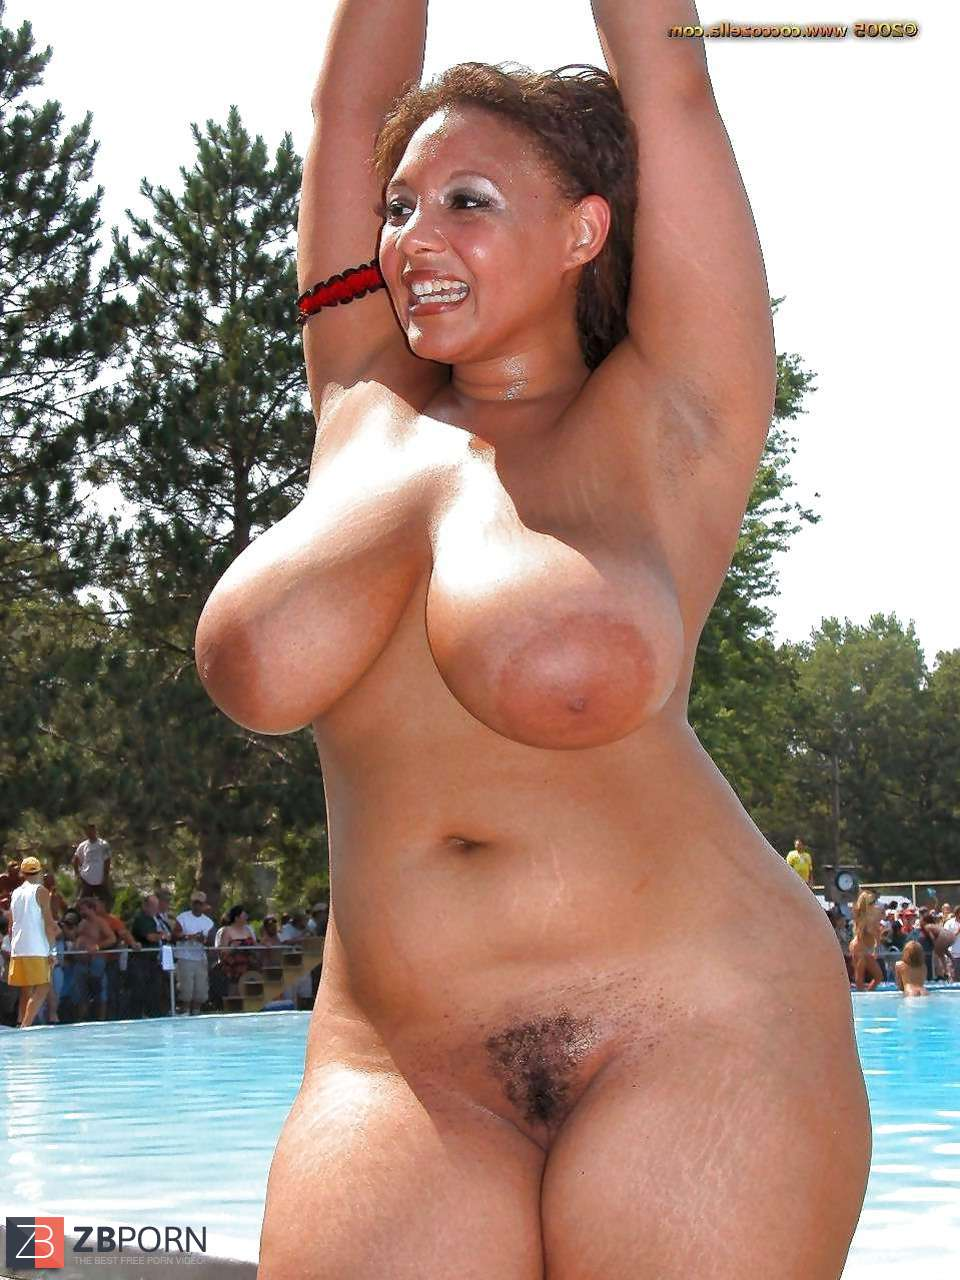 Big tits rican woman puerto